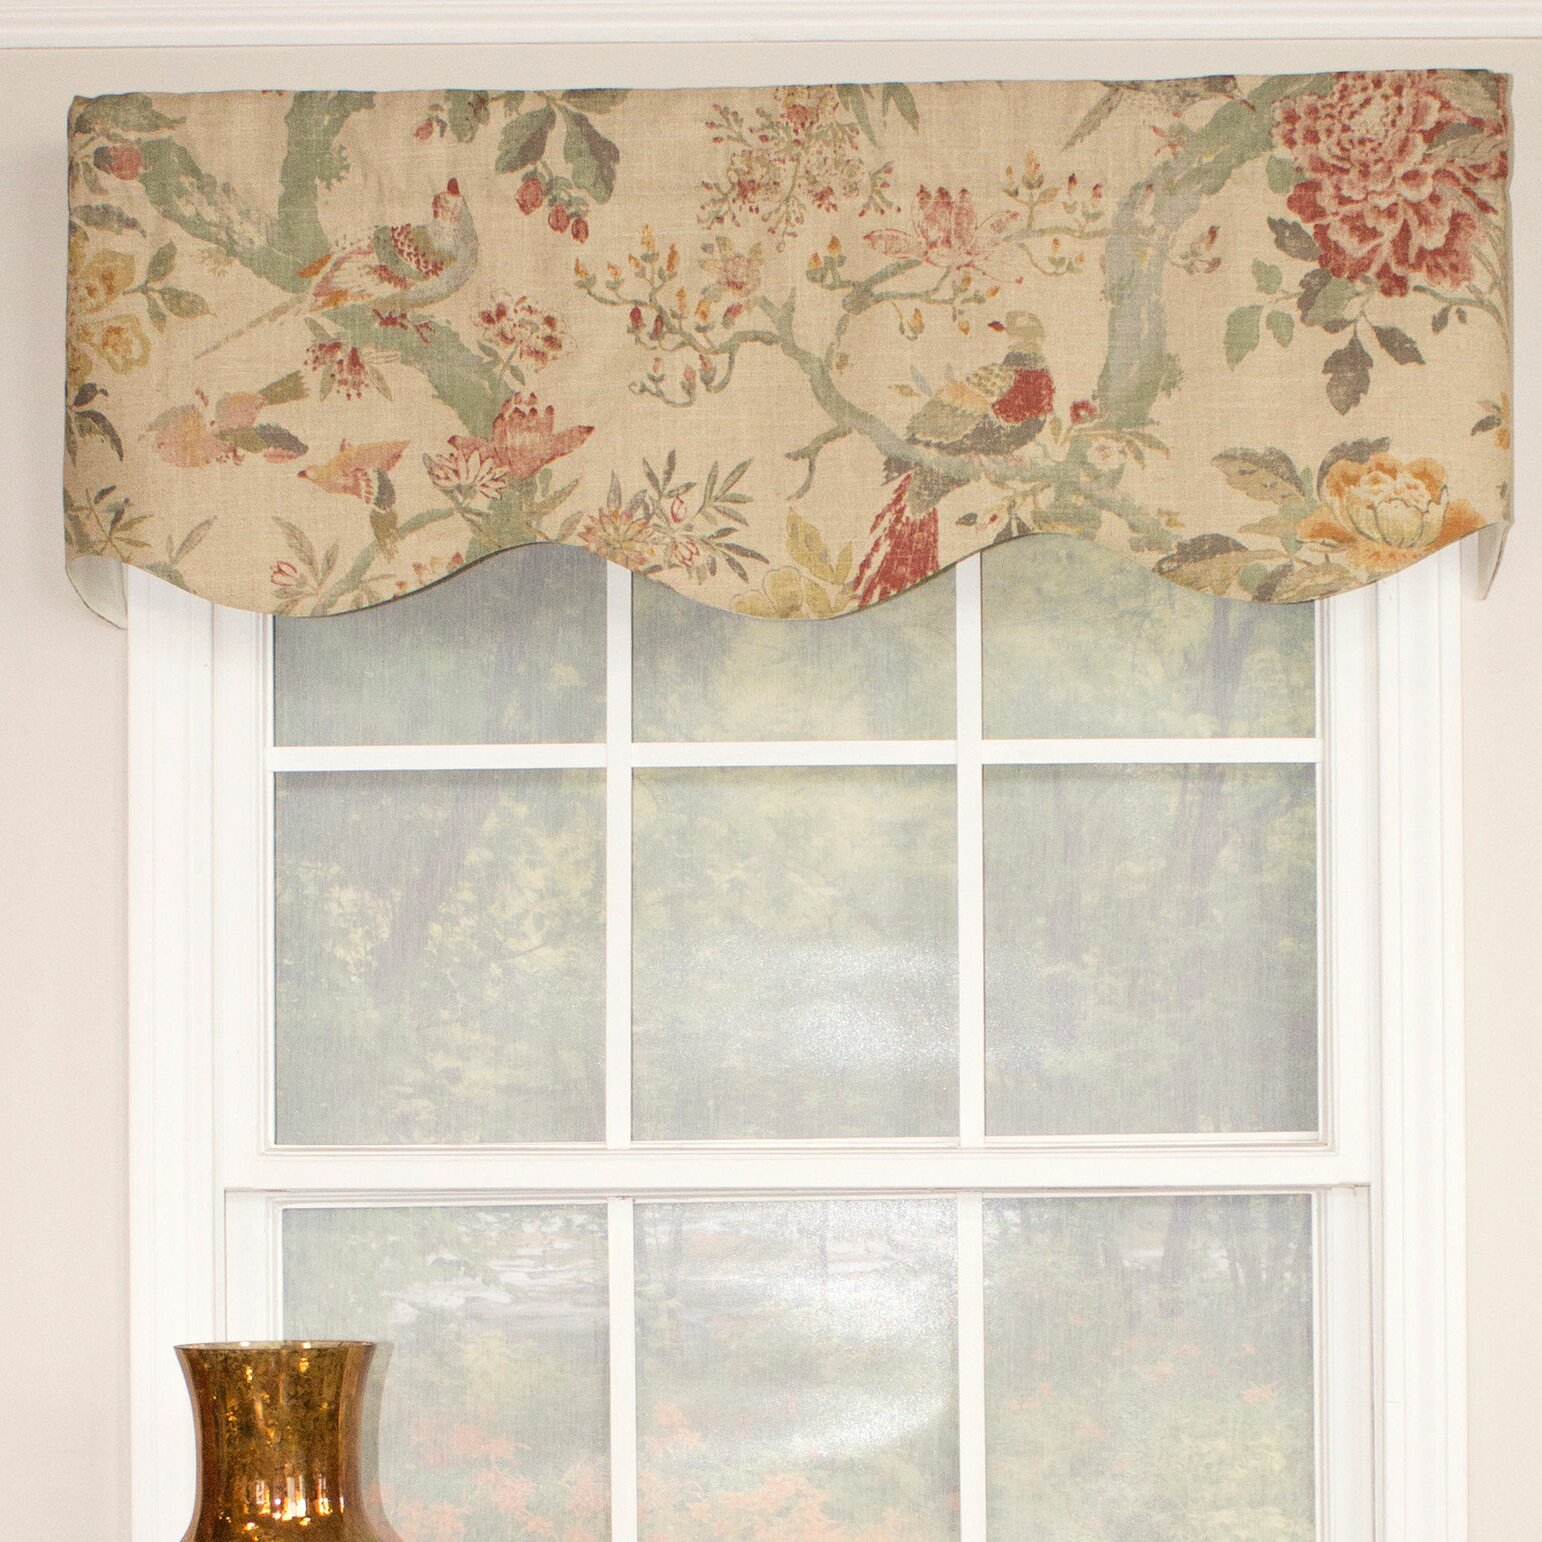 Valance Curtains For Living Room - Shayla provance curtain valance